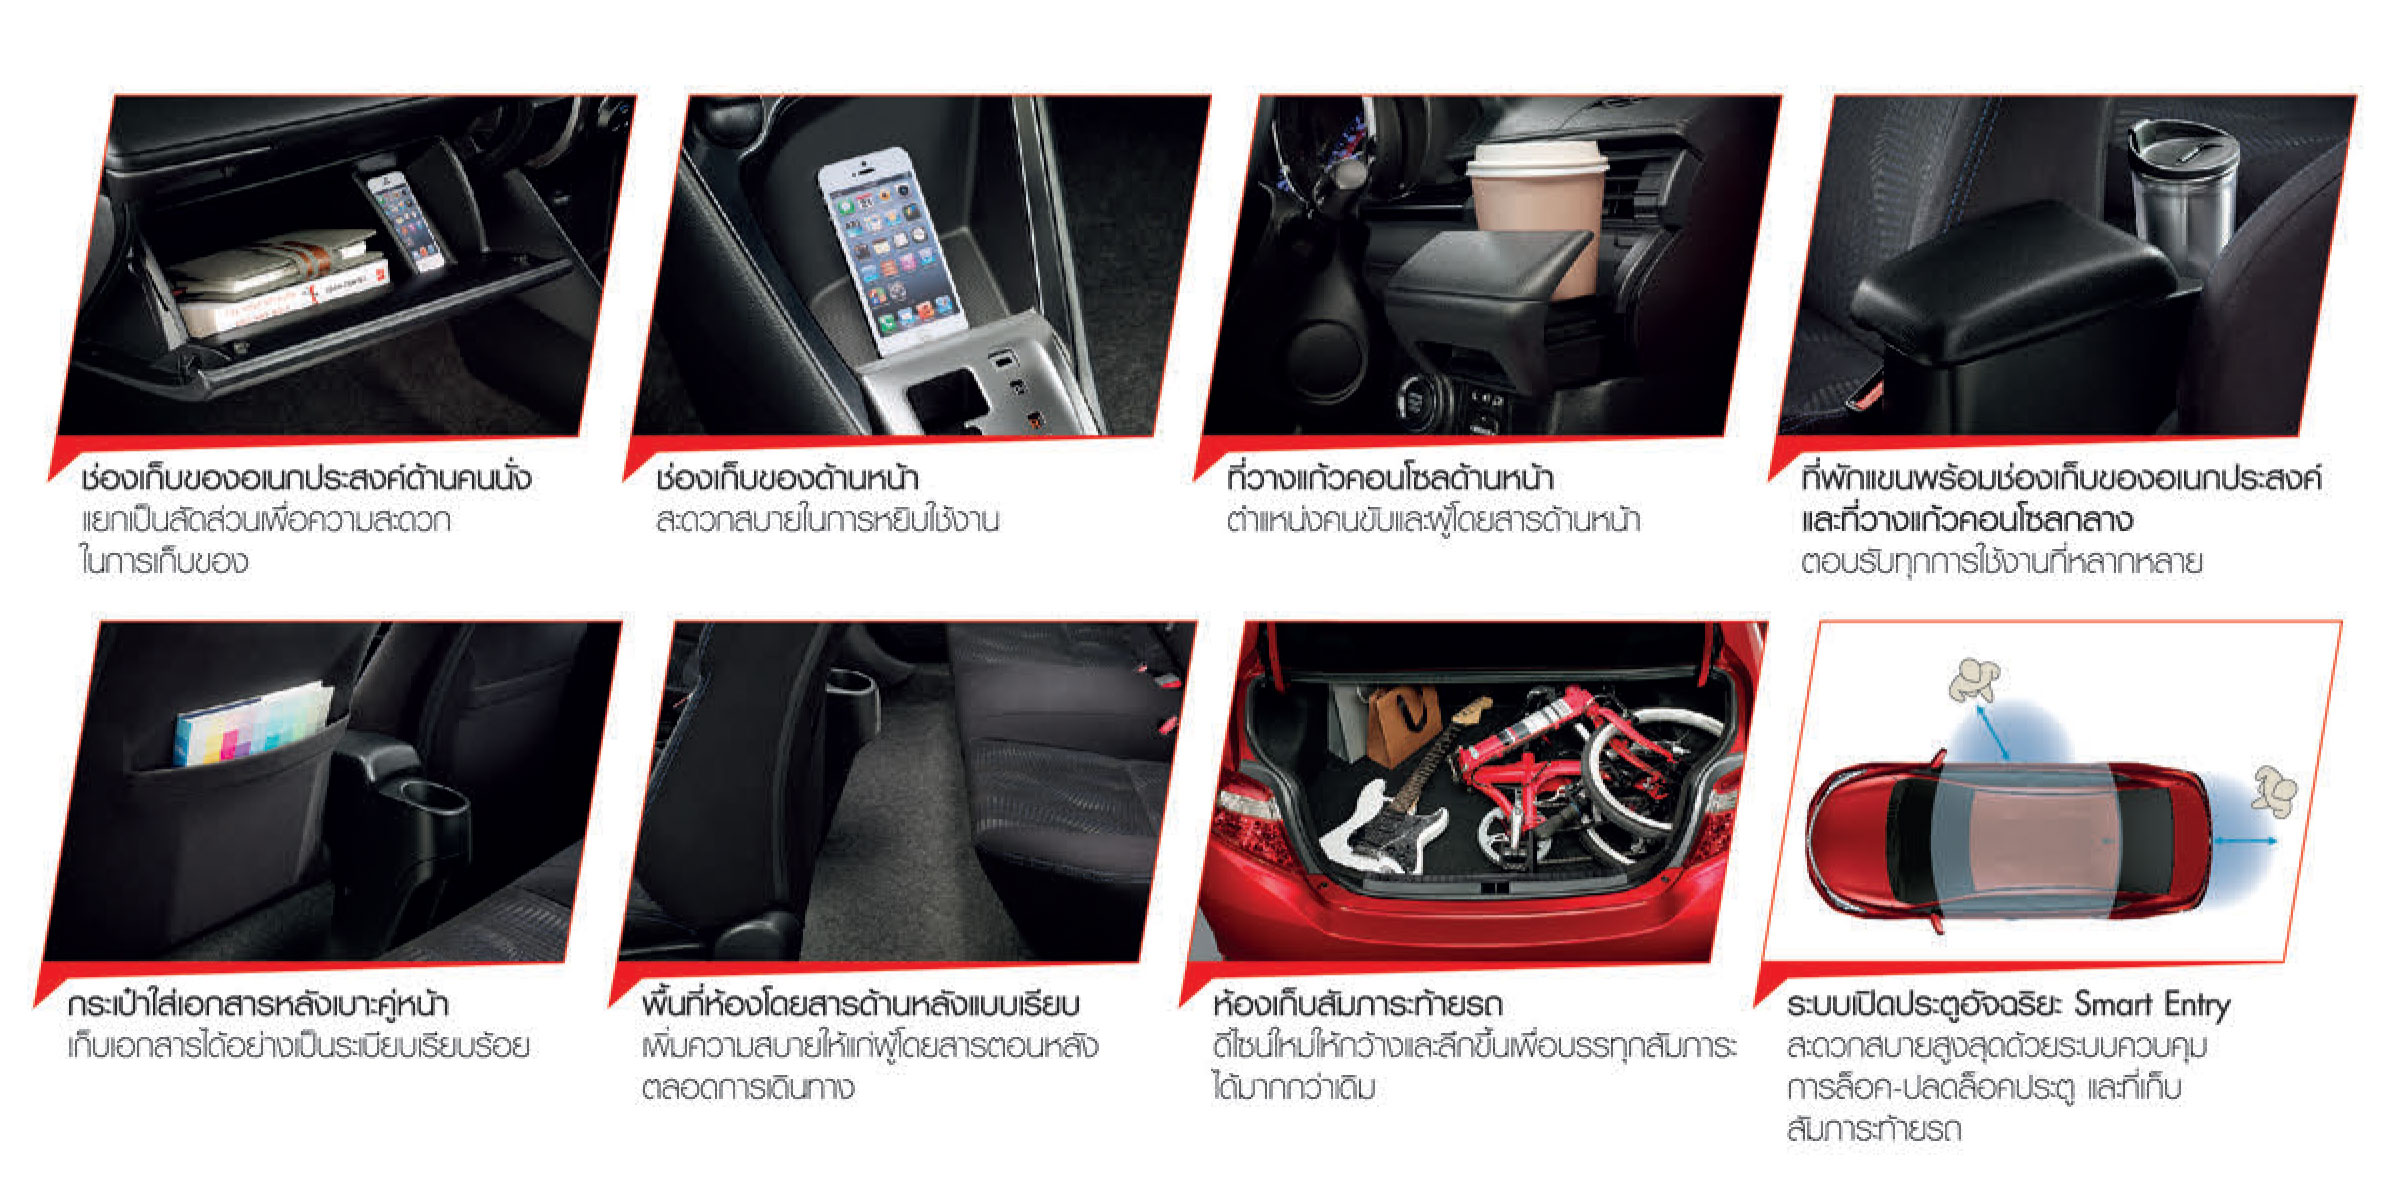 2013 Toyota Vios launched in Thailand – full details Image 163533